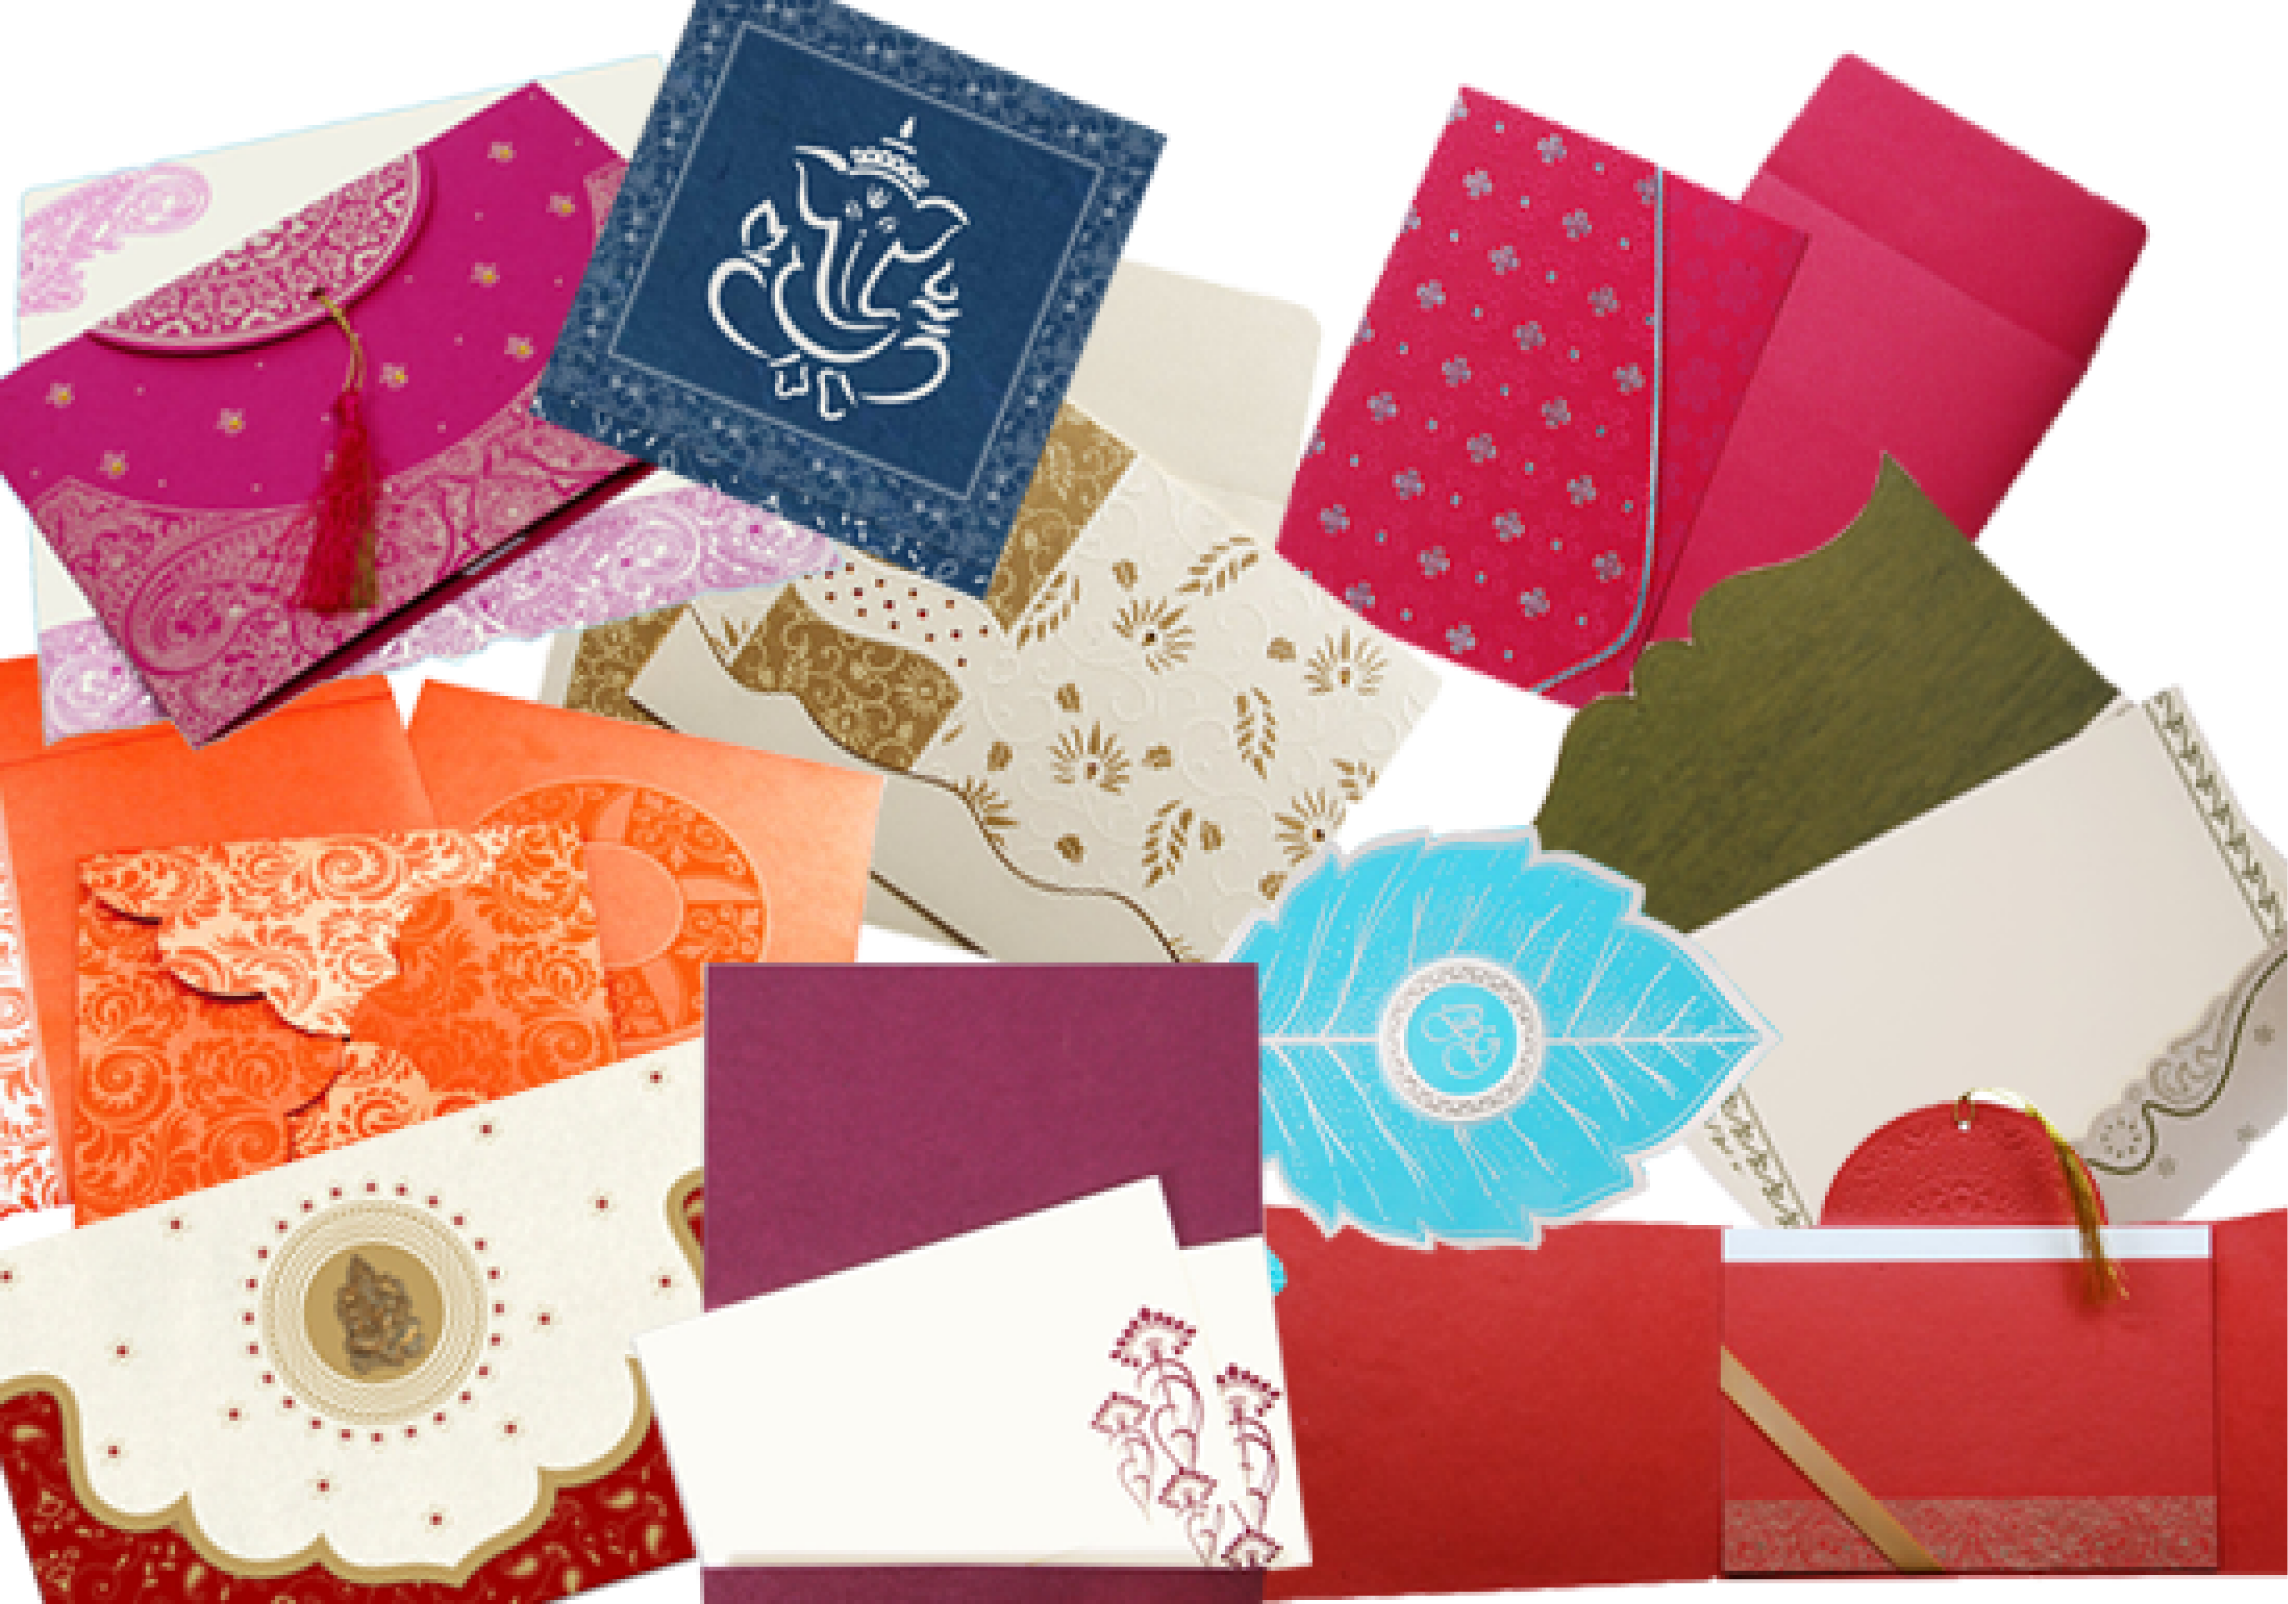 South Asian Wedding Card Png Free South Asian Wedding Card Png Transparent Images 77978 Pngio